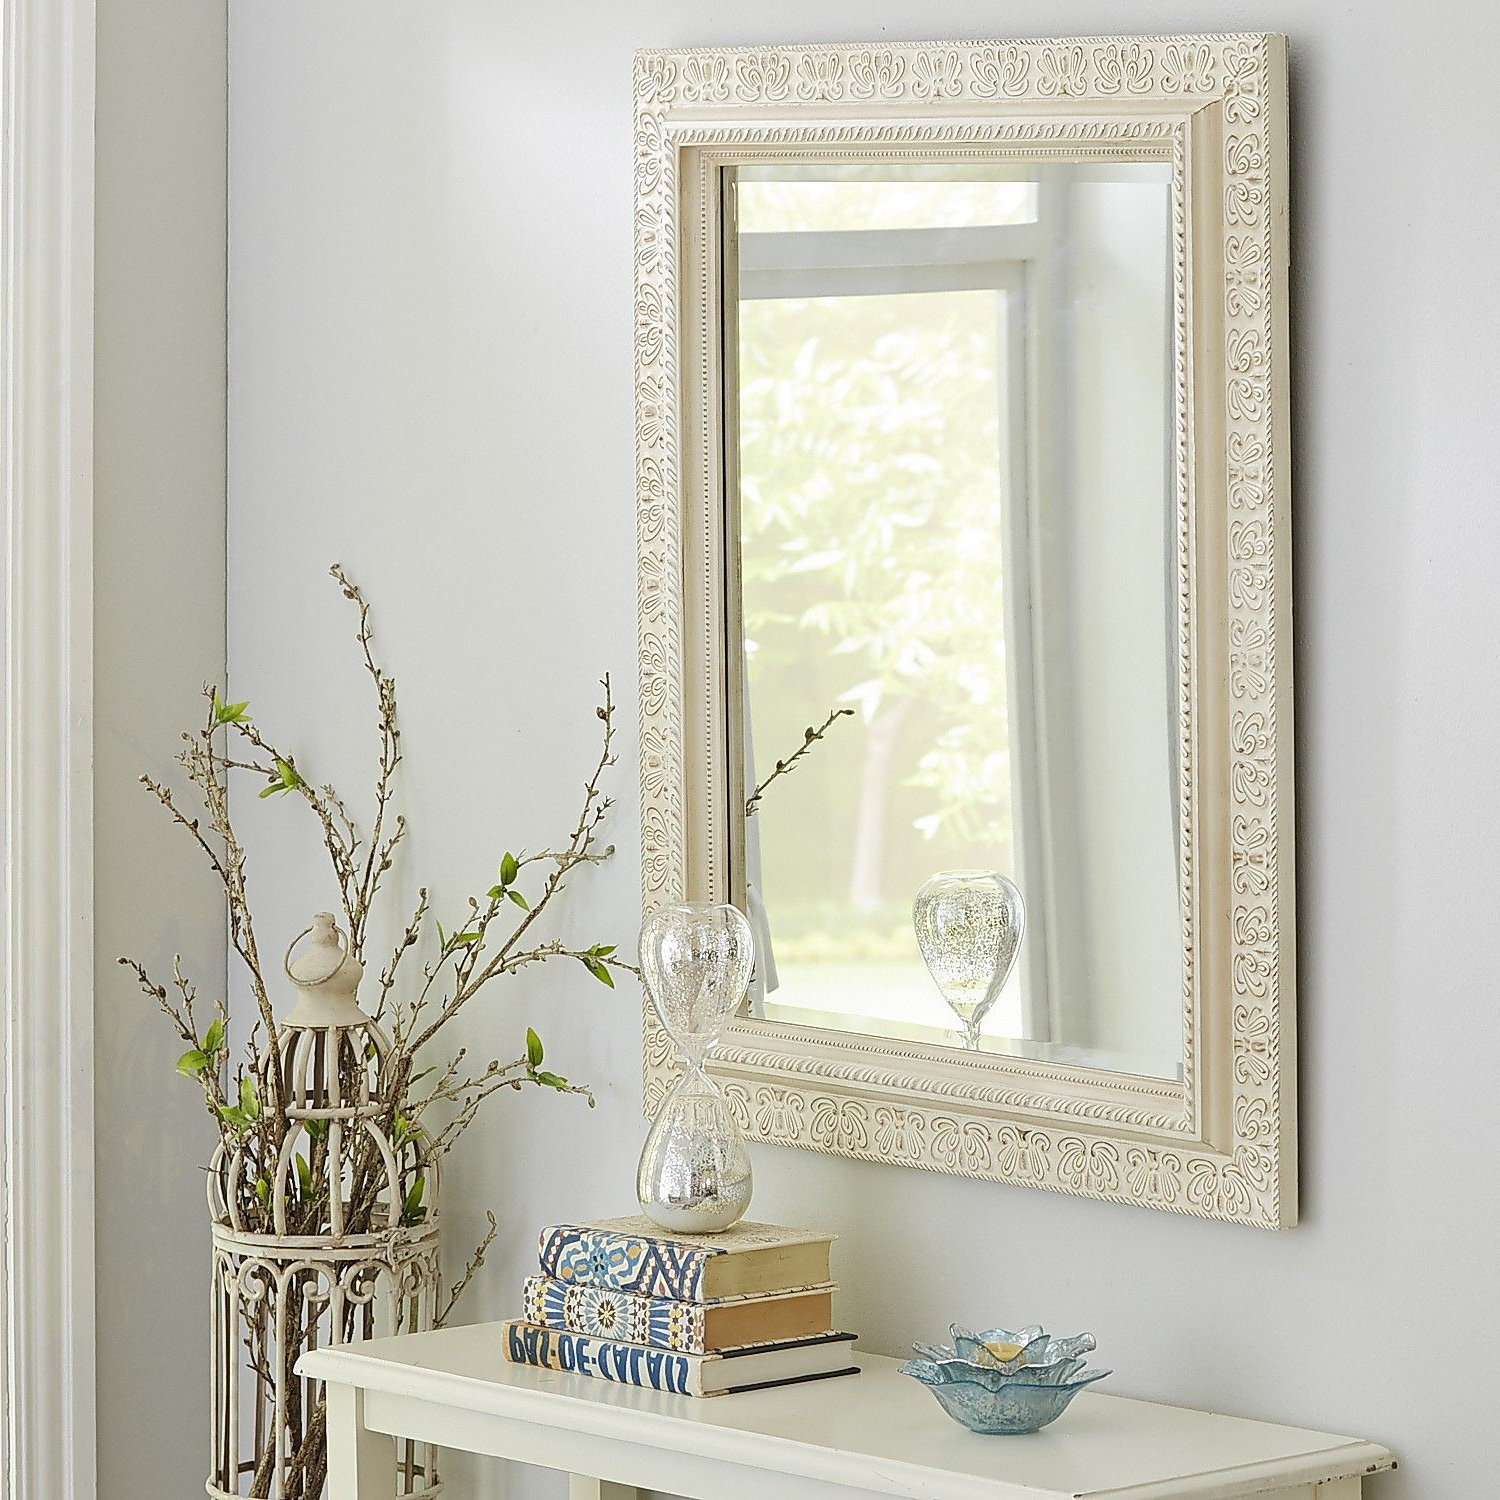 Mirror, Accent Decor, Emboss Throughout Widely Used Ulus Accent Mirrors (Gallery 5 of 20)